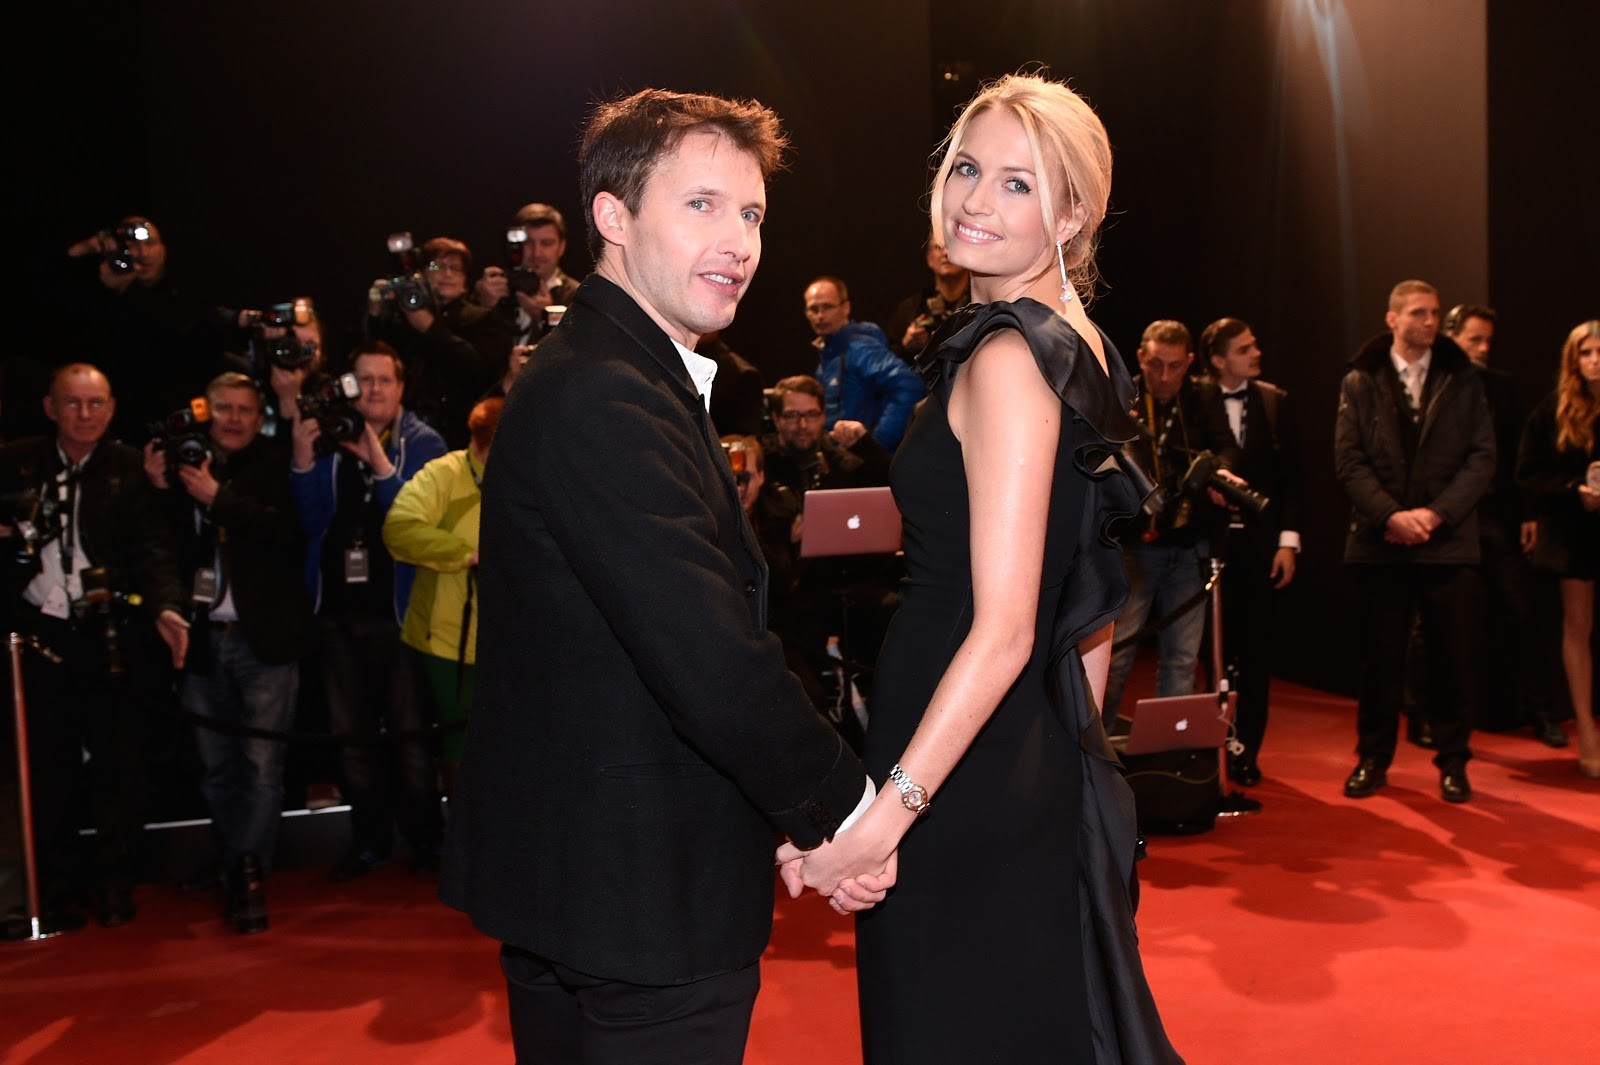 James Blunt com a companheira Sofia Wellesley (Foto: getty)